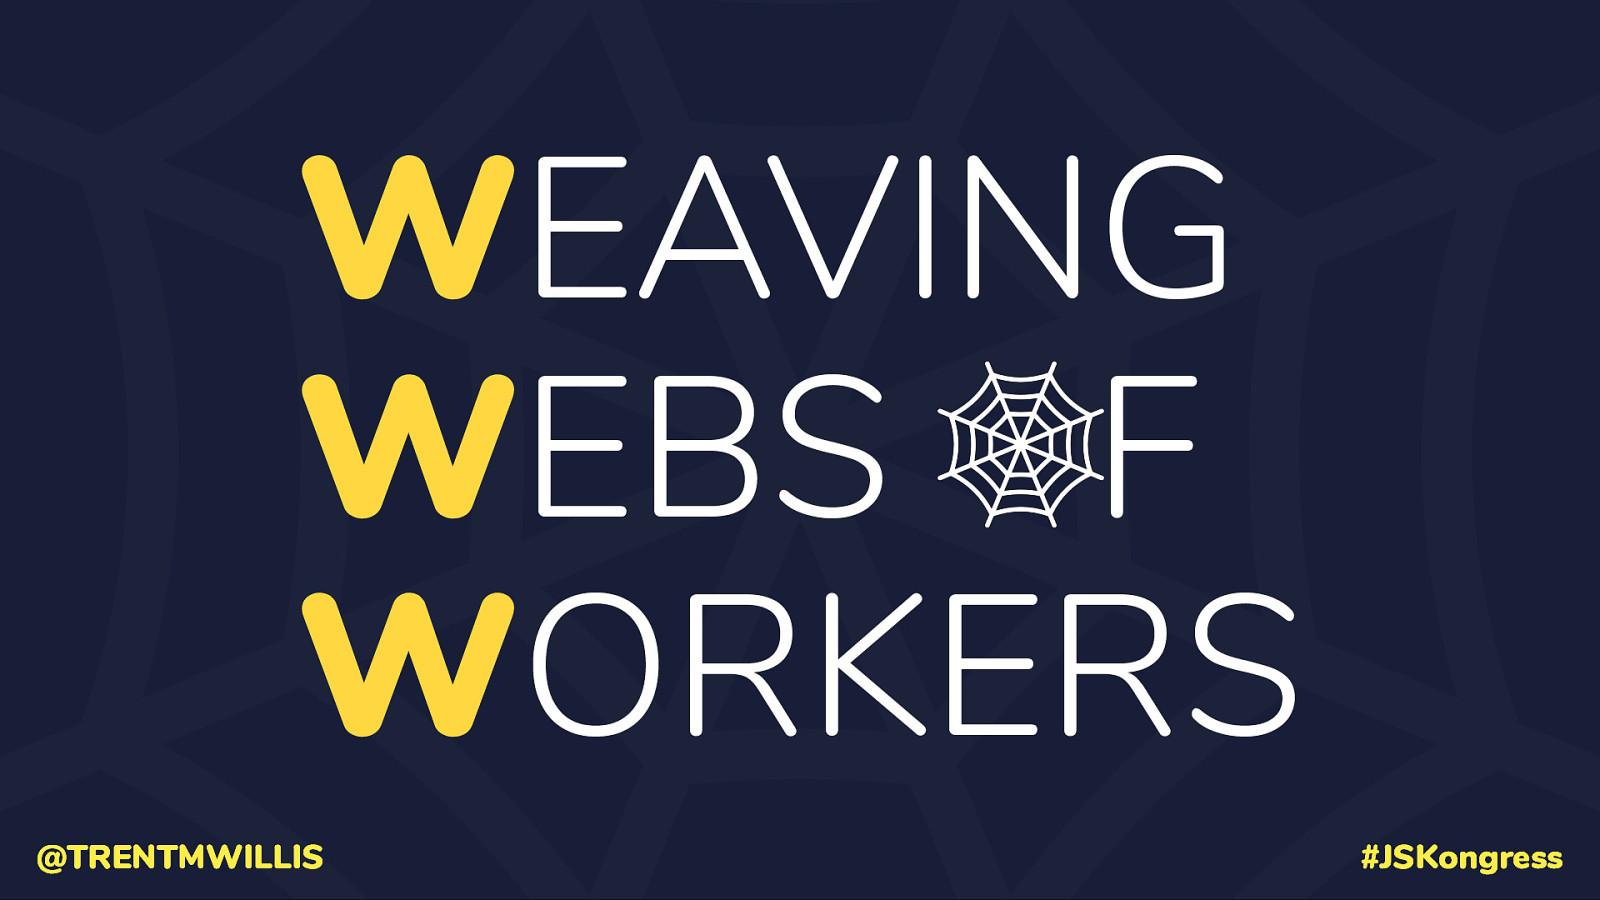 Weaving Webs of Workers